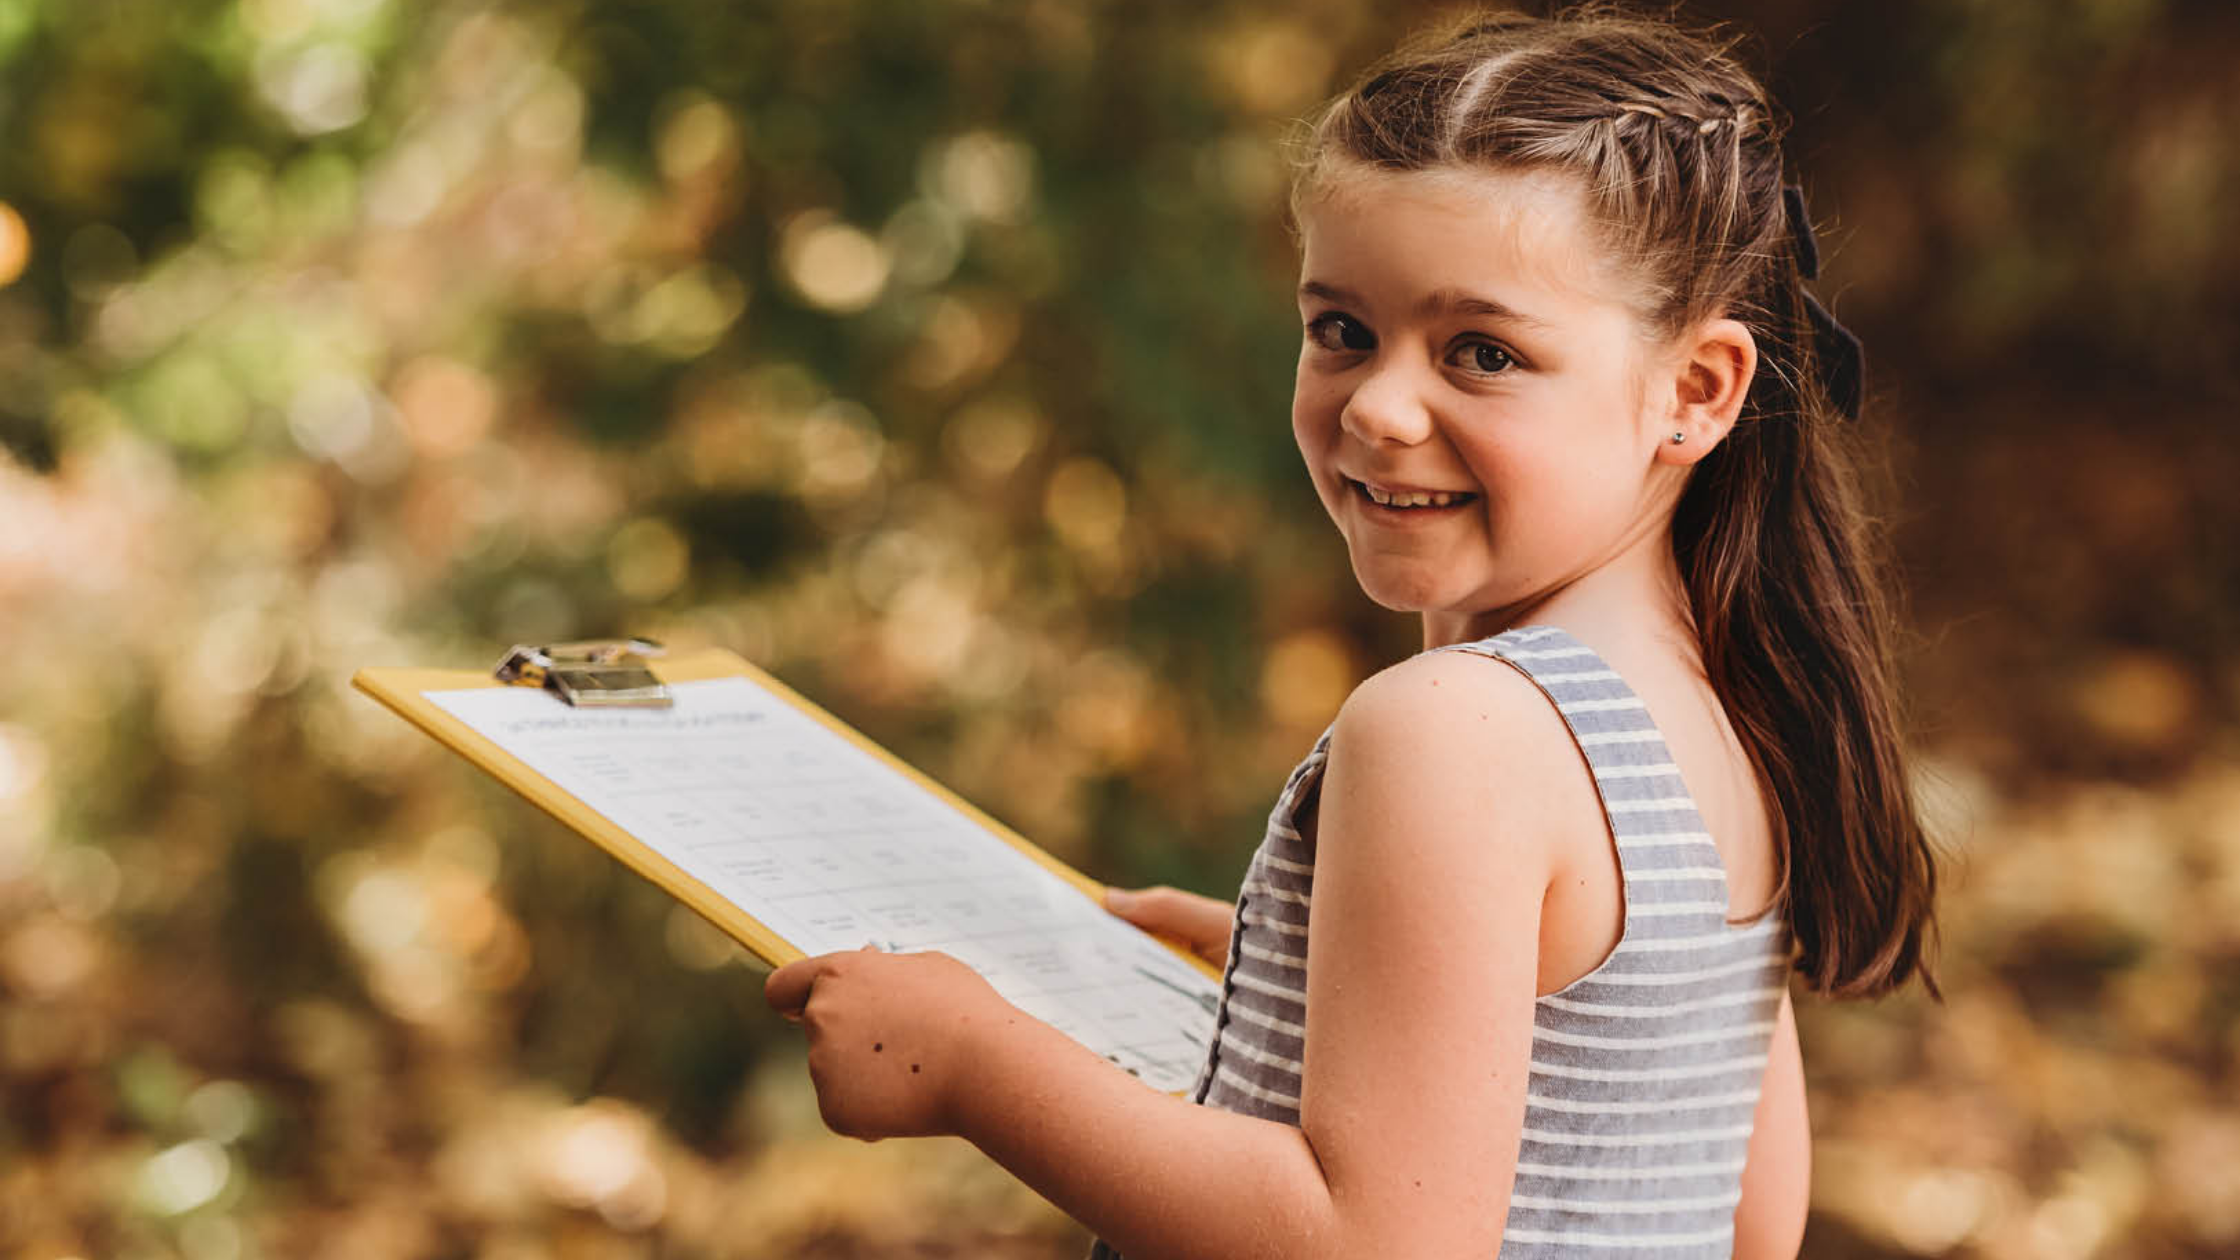 Girl in nature looking at the 24 Nature Play Activities list and smiling